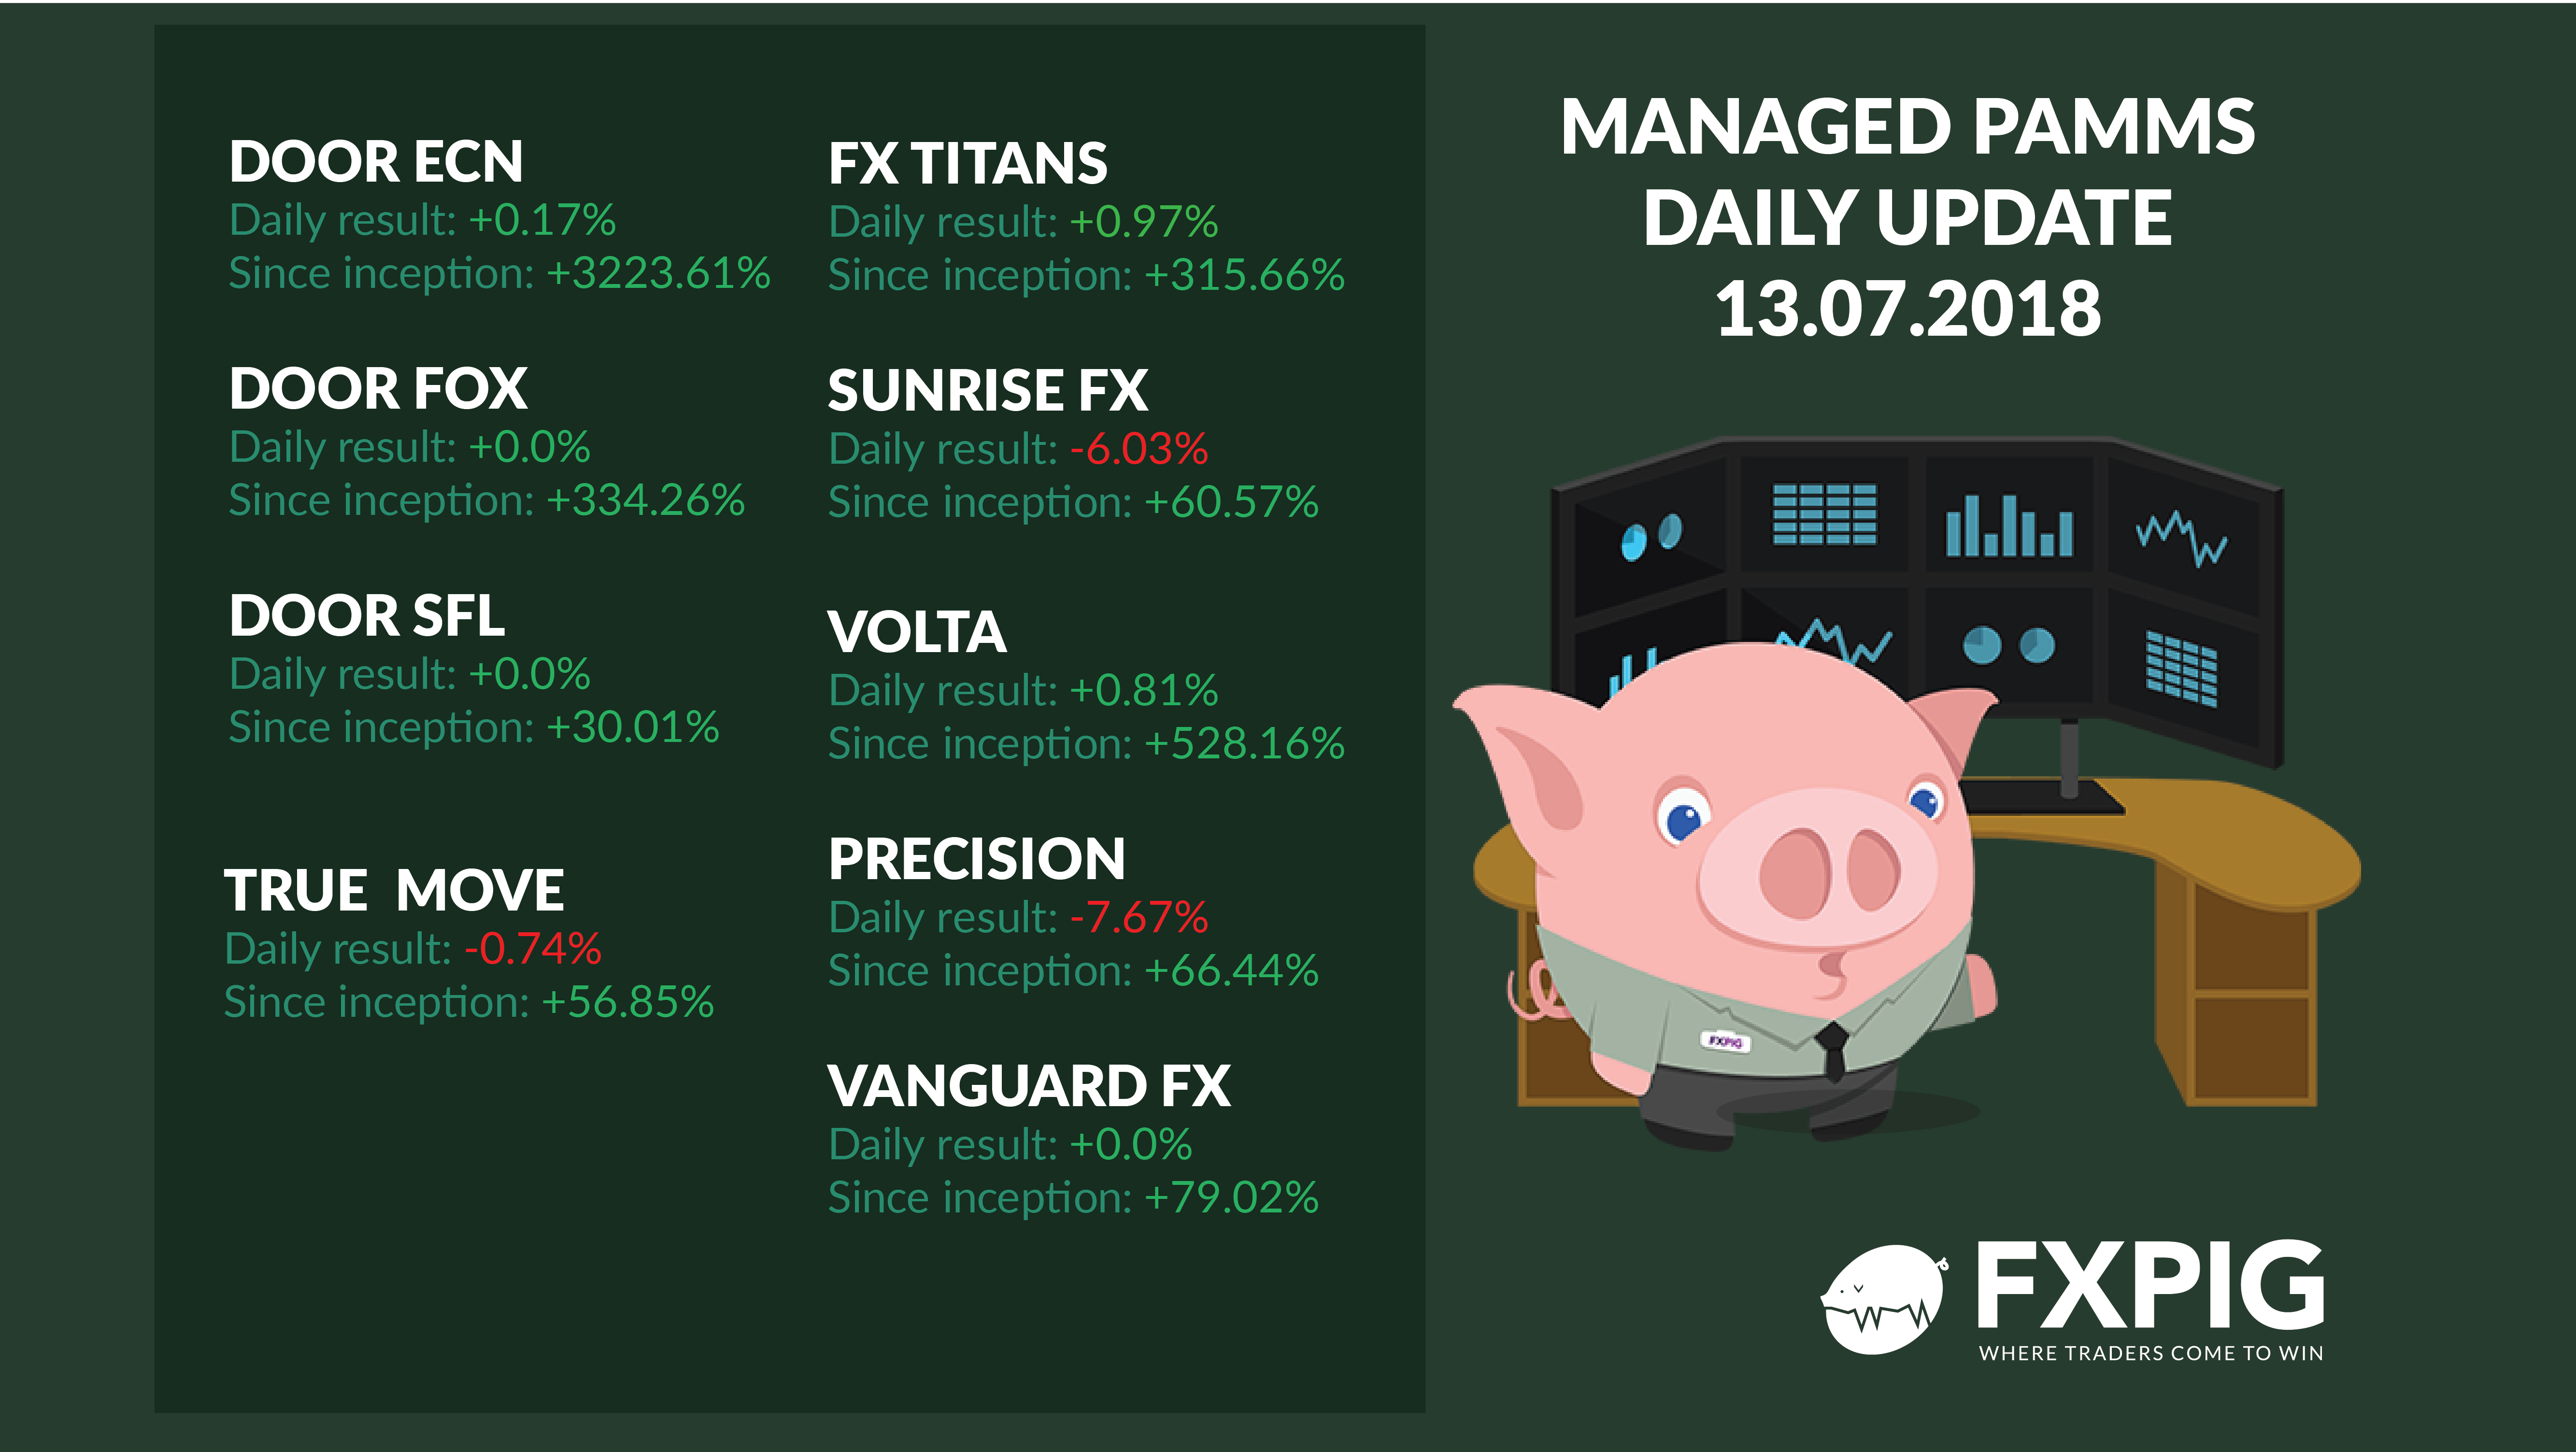 FOREX_managed-forex-accounts-daily-results1307_FXPIG